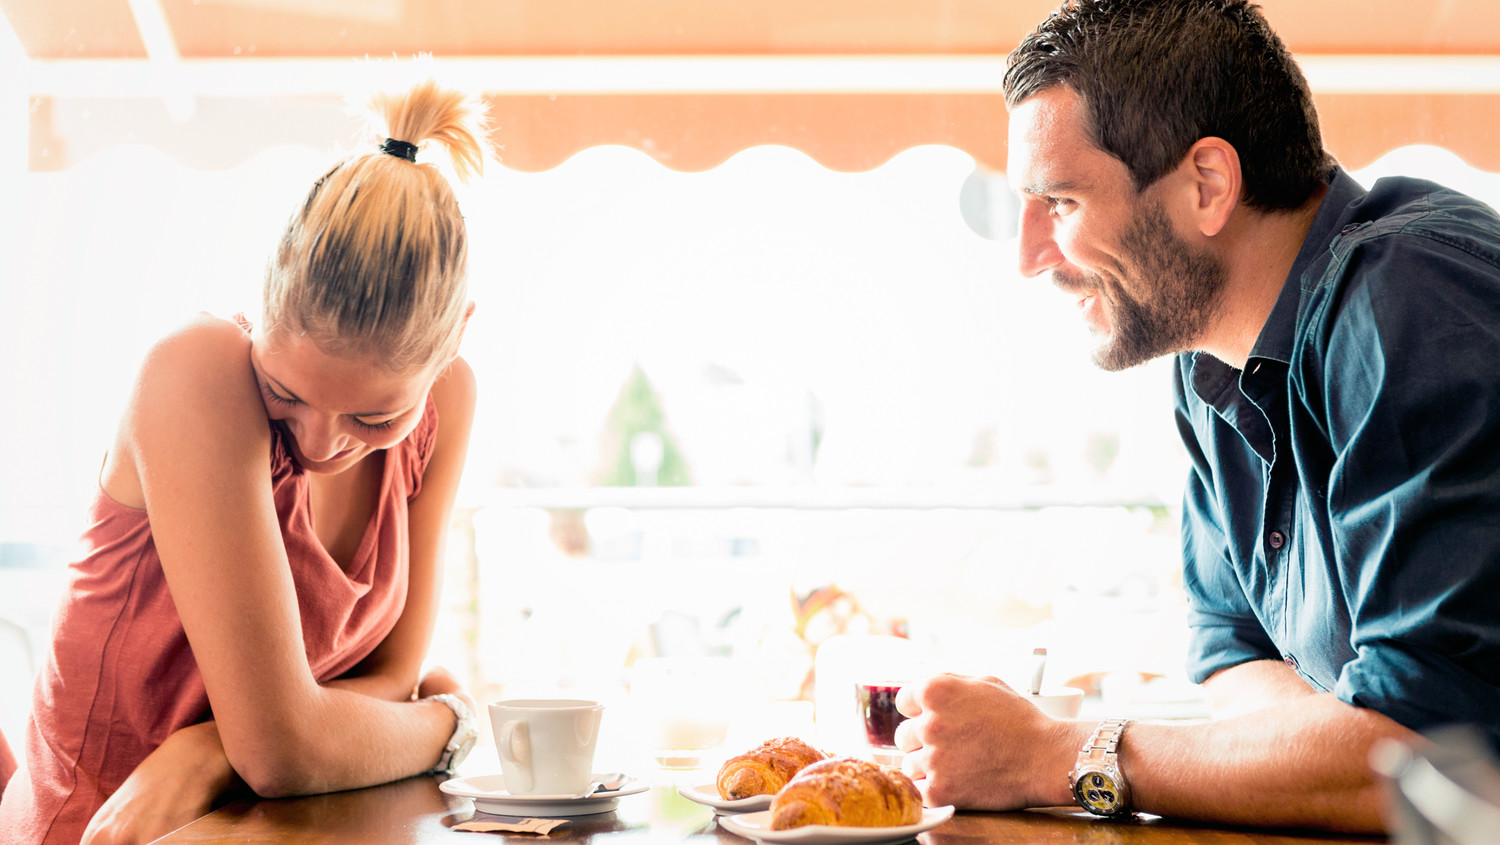 dating The  Problem With Ambiguity in Relationships · Should You Live Together Before  Marriage?